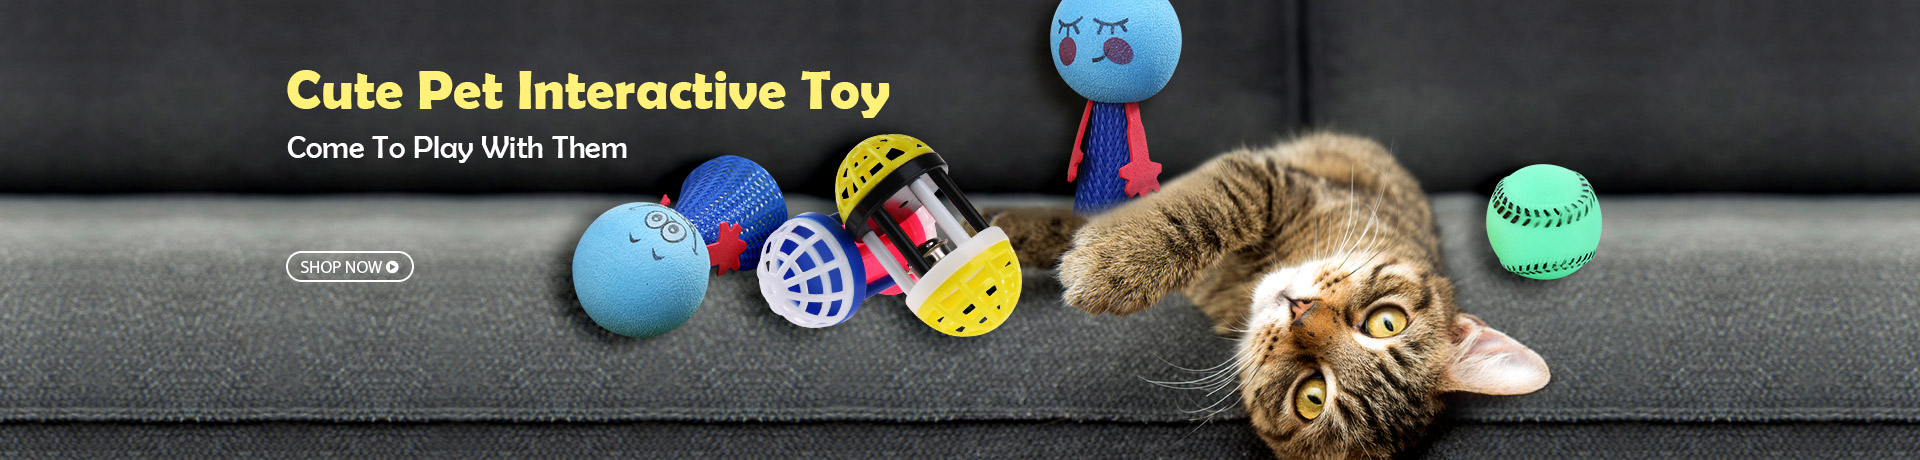 Cute Pet Interactive Toy